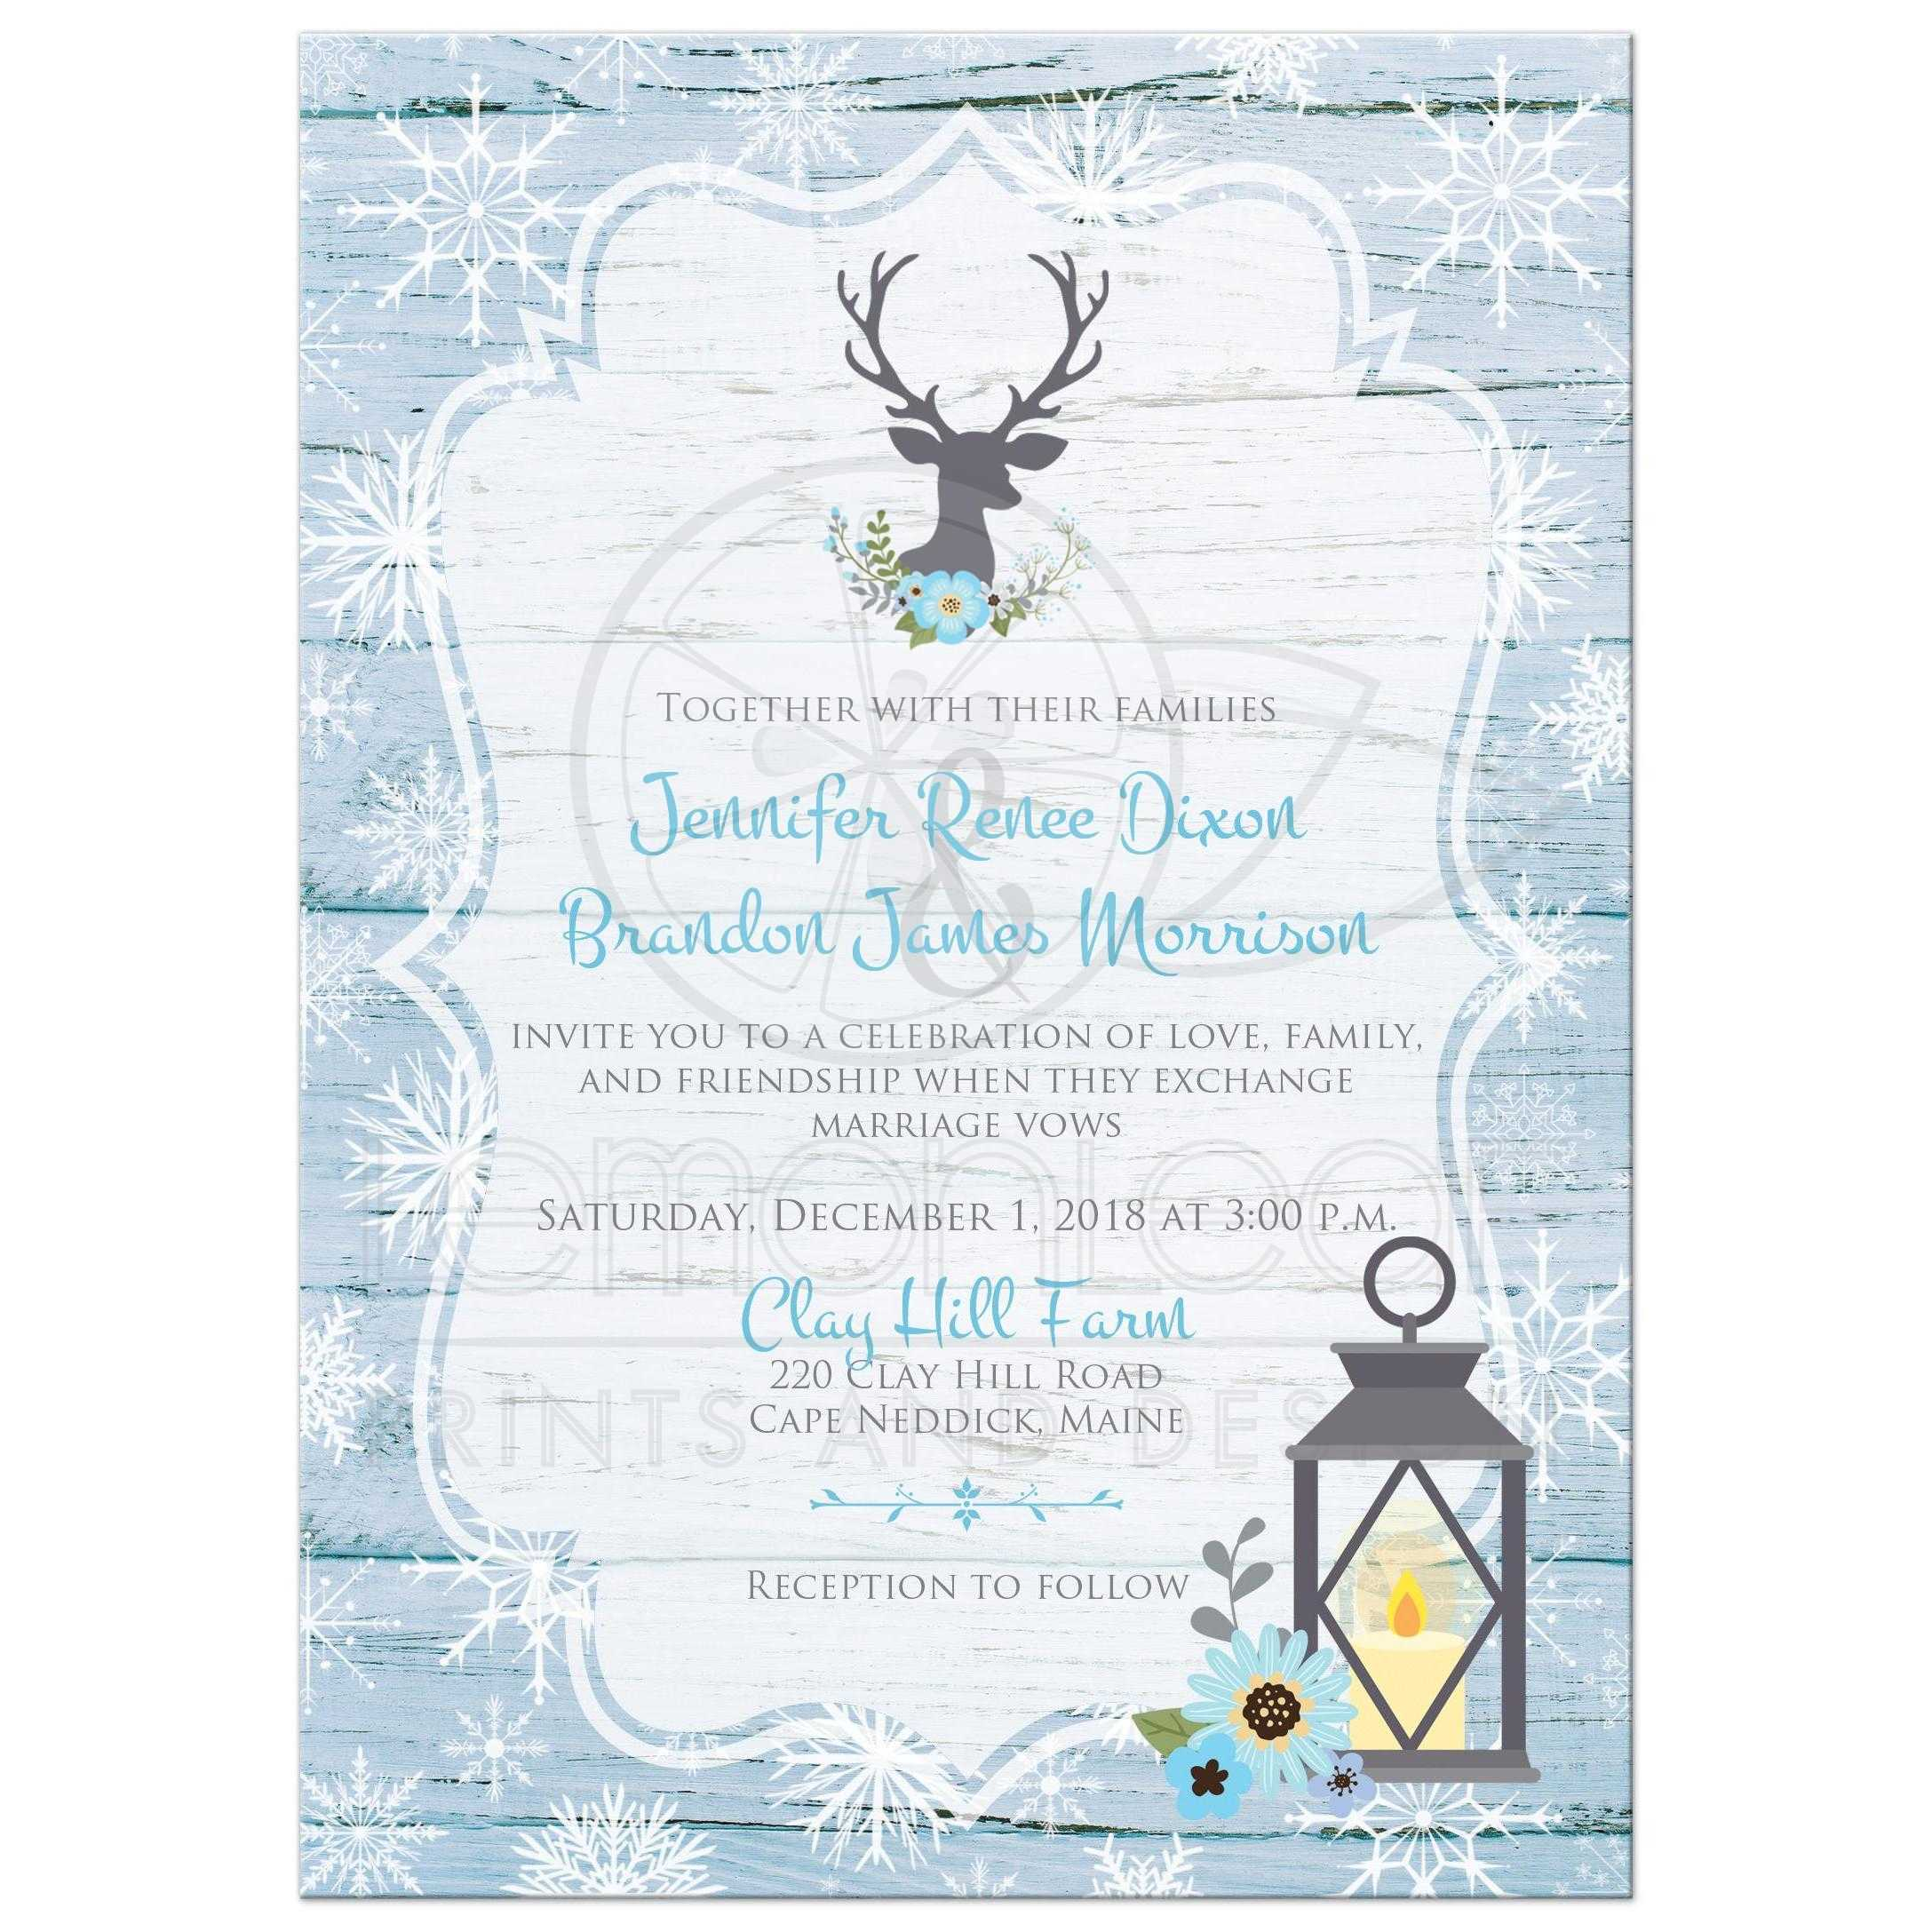 Rustic Blue And White Snowflakes Winter Wedding Invitation With Flowers Gray Deer Head